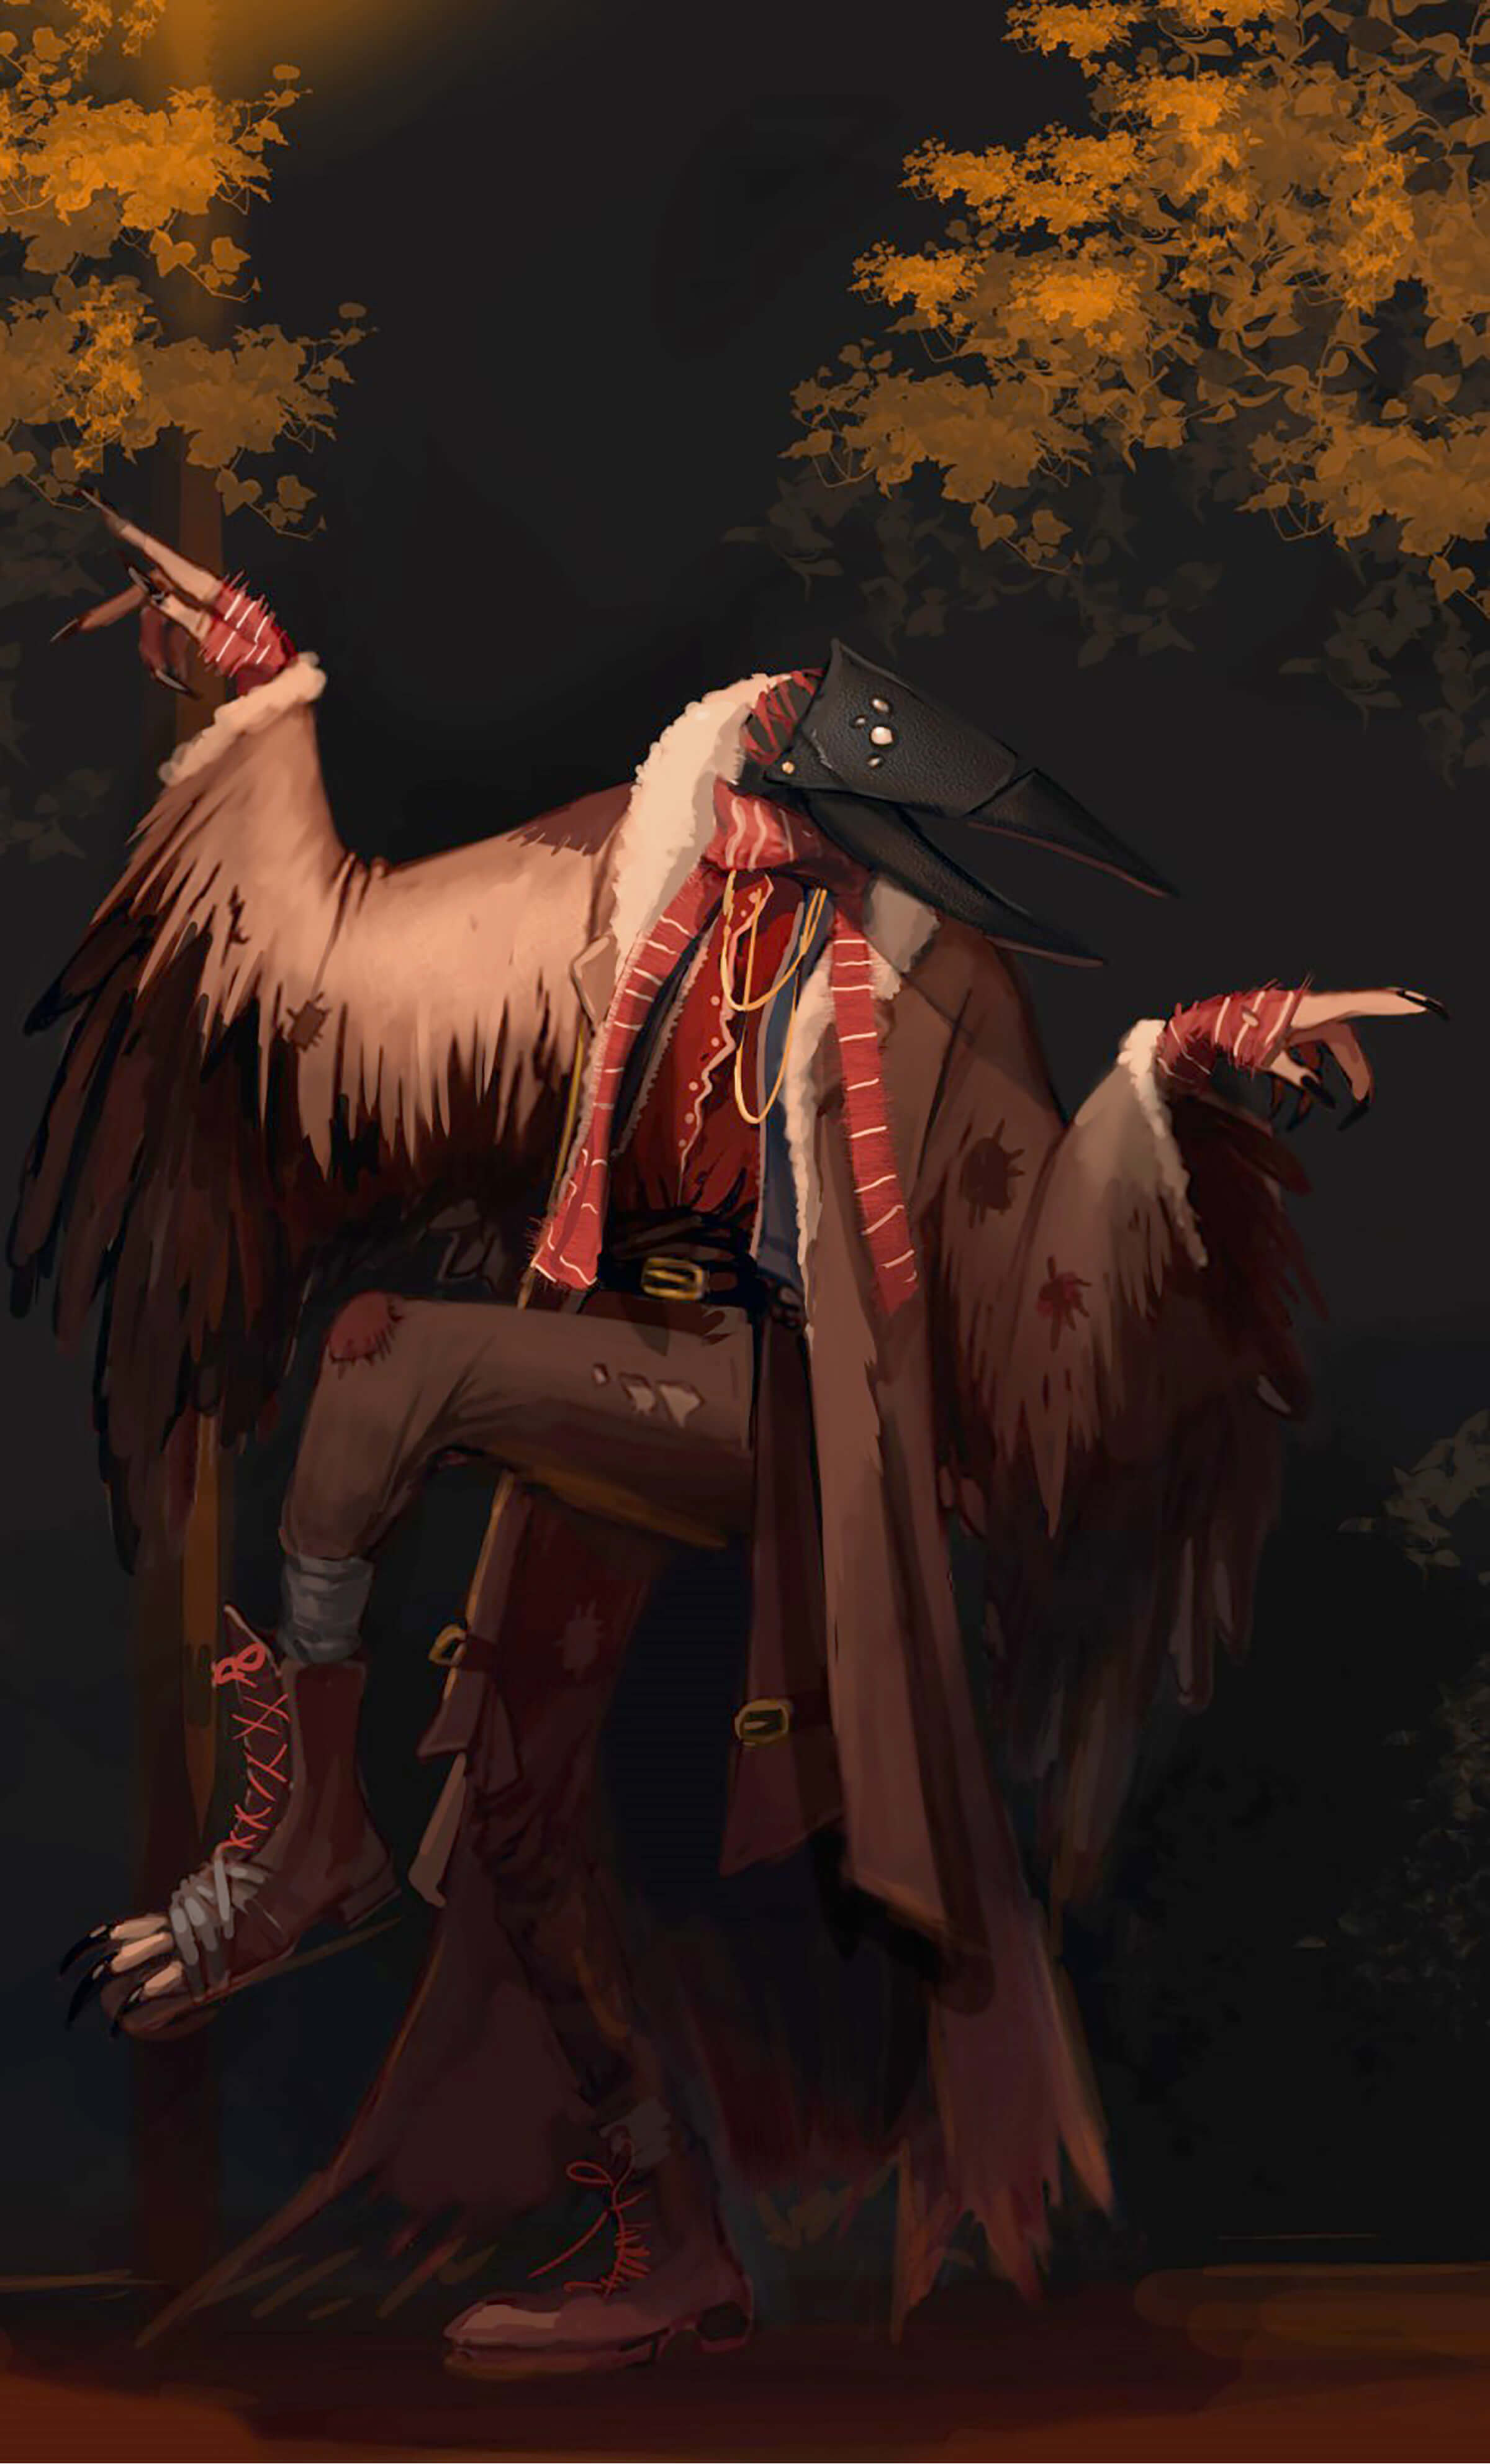 A creature with a bird mask and hands with long black fingernails